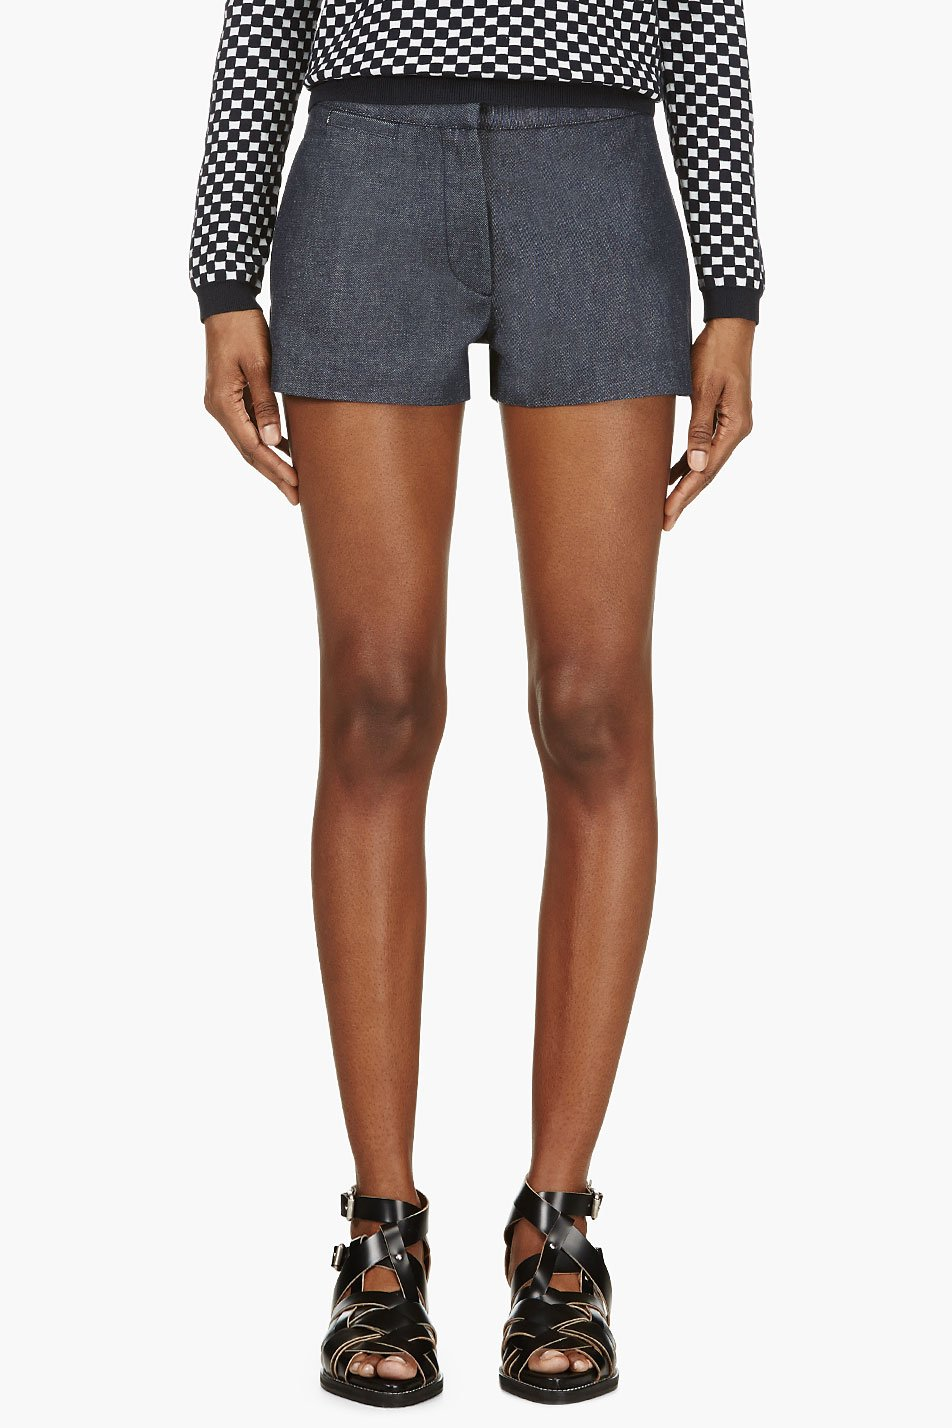 acne studios indigo sailor denim shorts